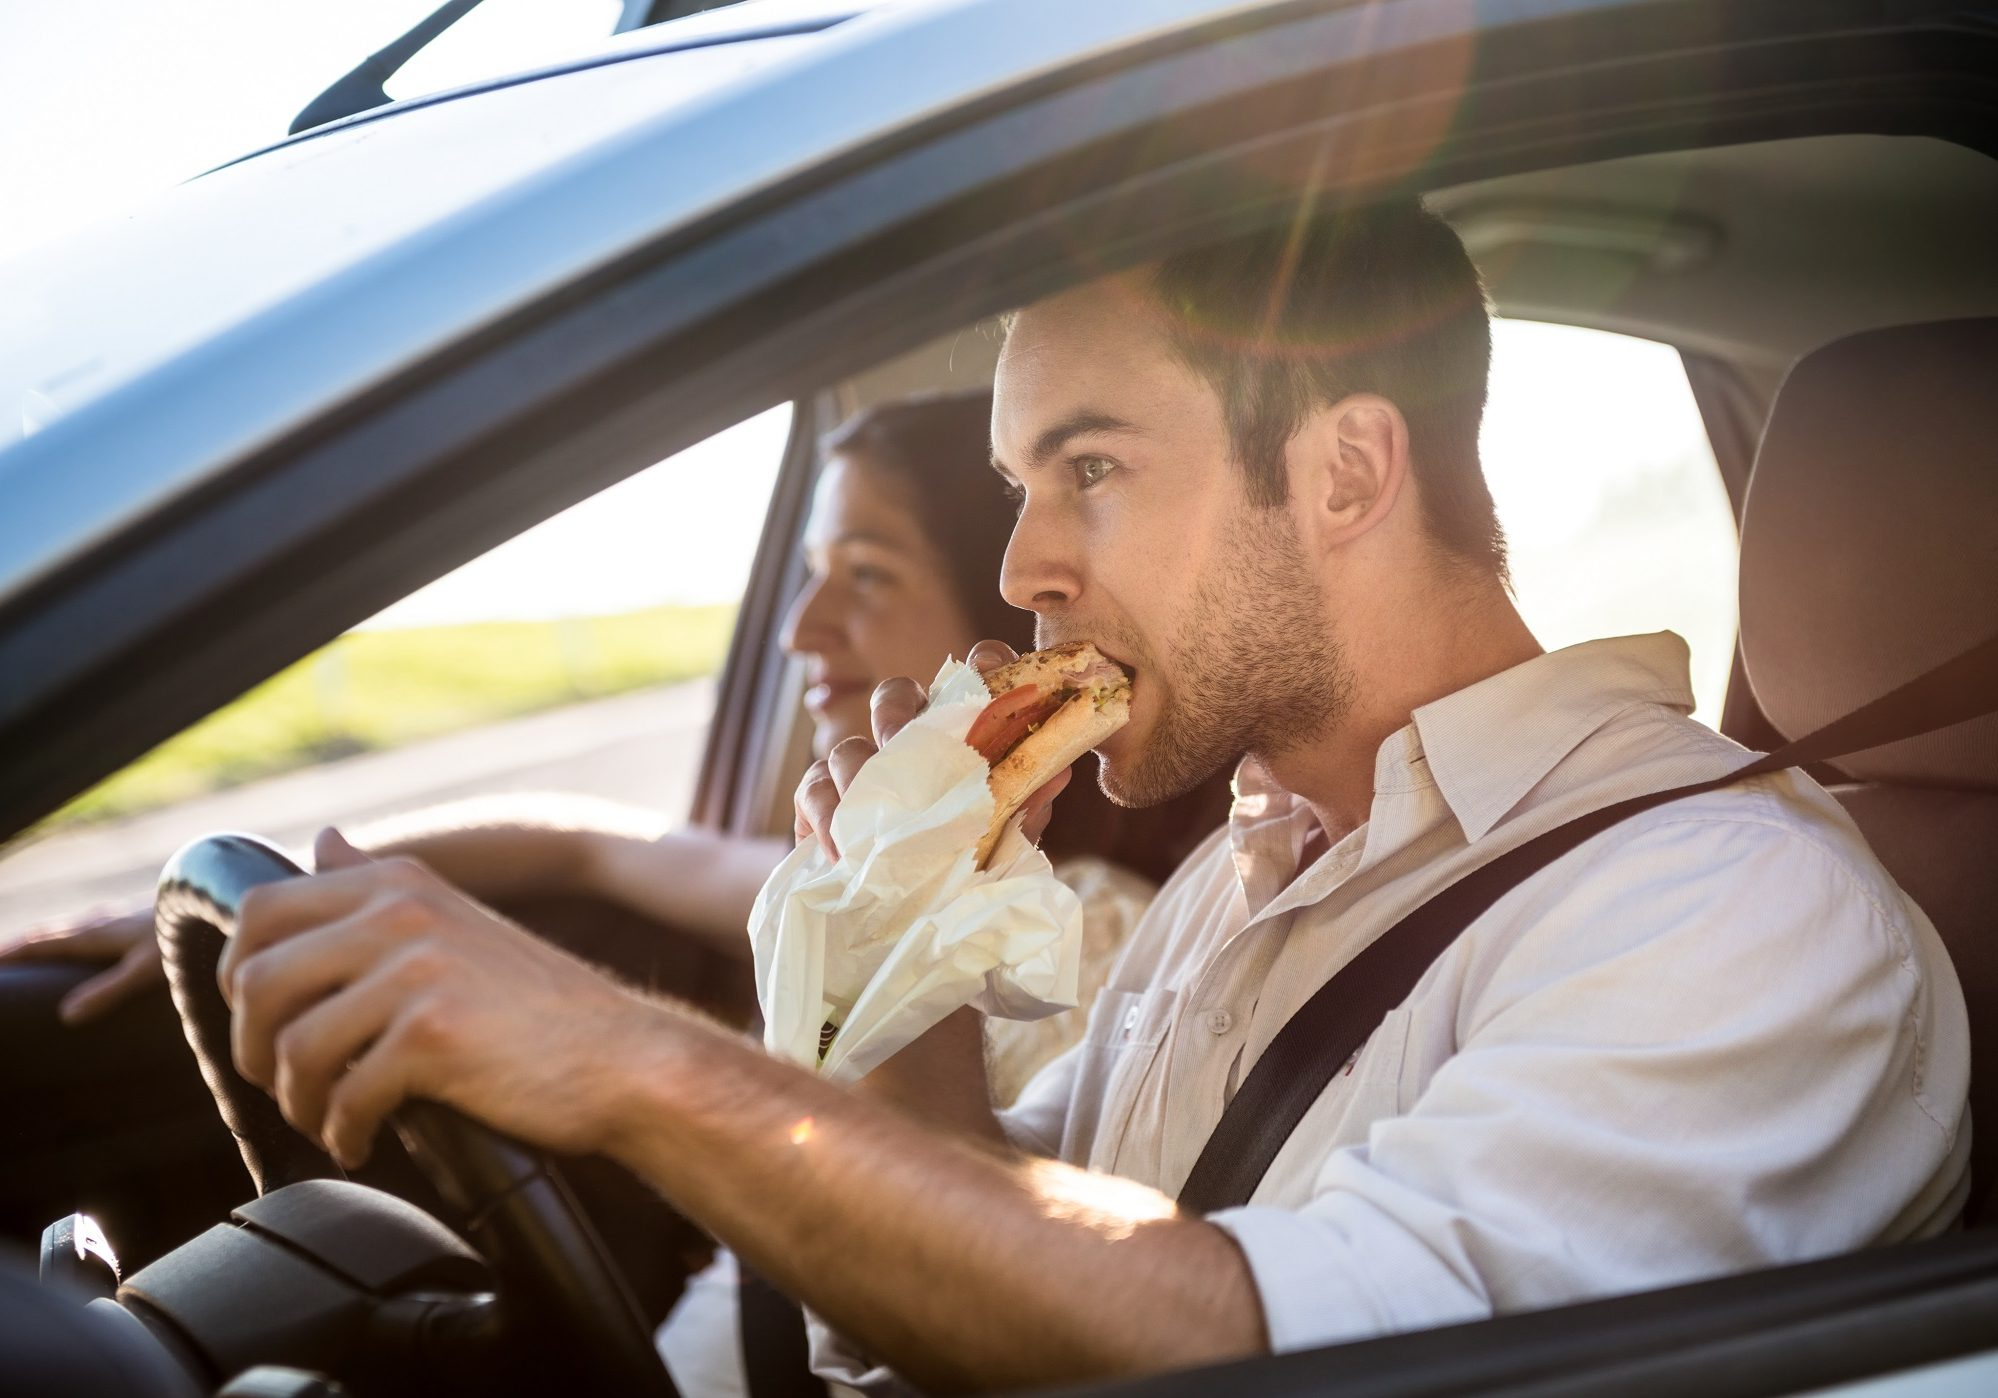 dangers of eating while driving